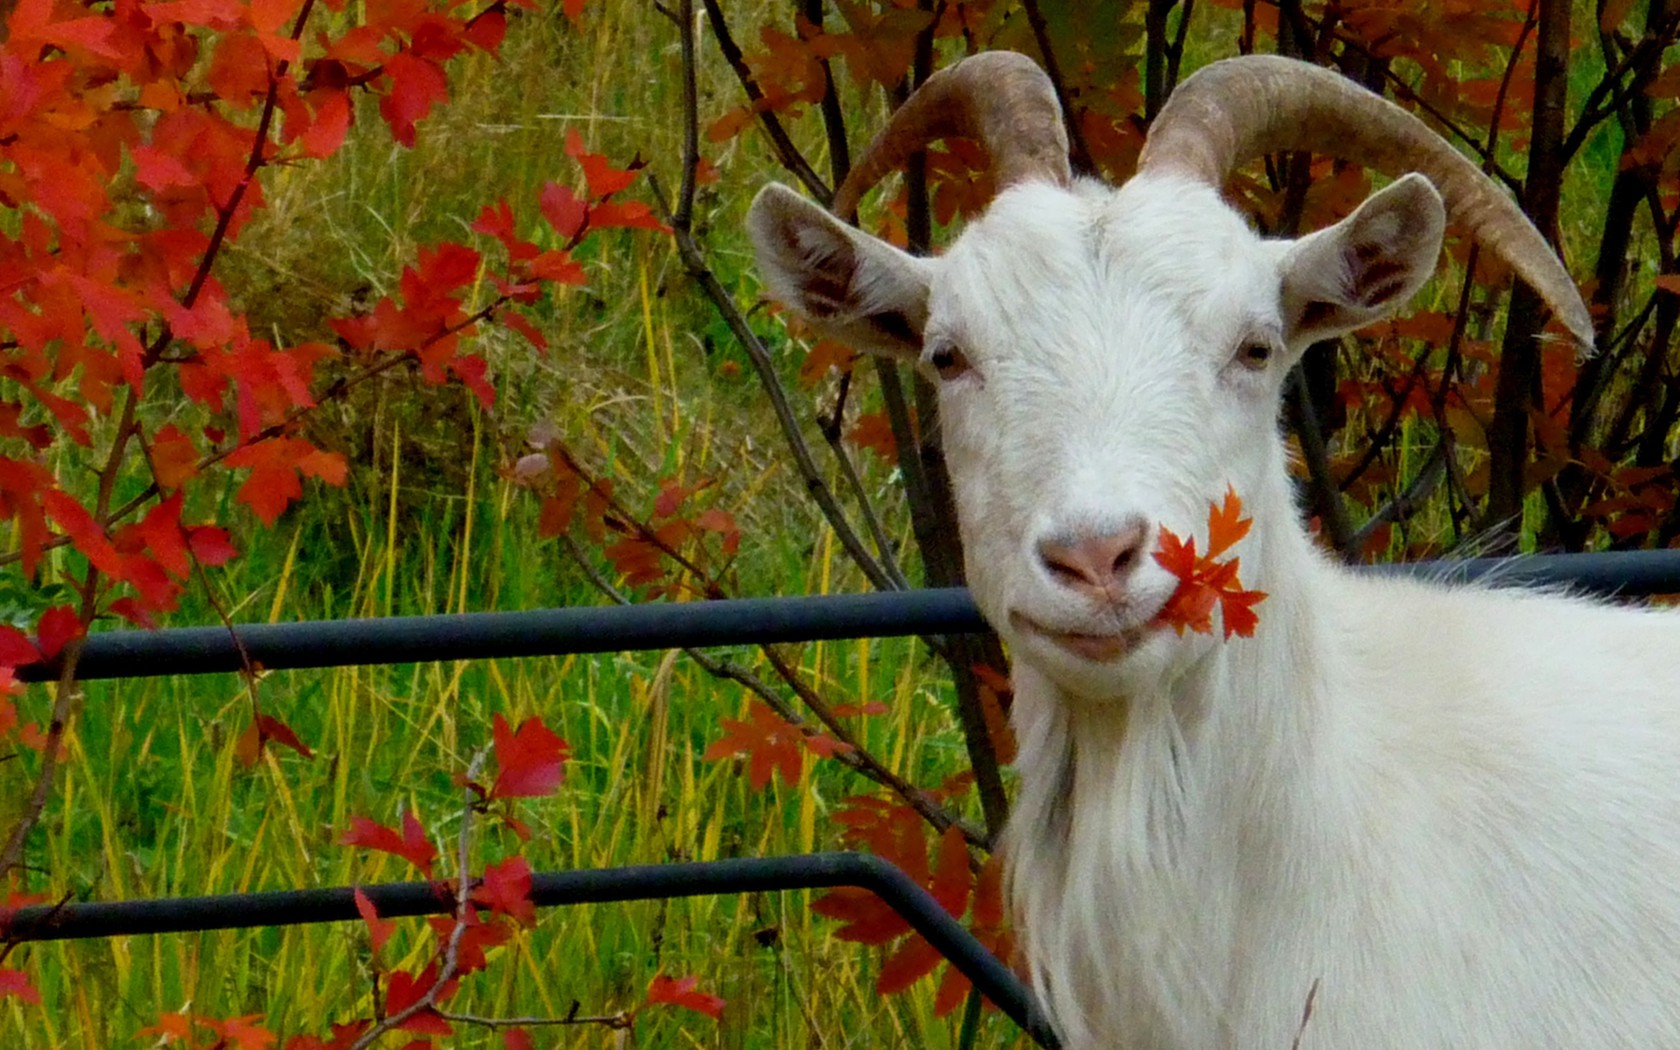 Fall Leaves Hd Mobile Wallpaper Animals Autumn Goats Leaves Wallpaper Allwallpaper In